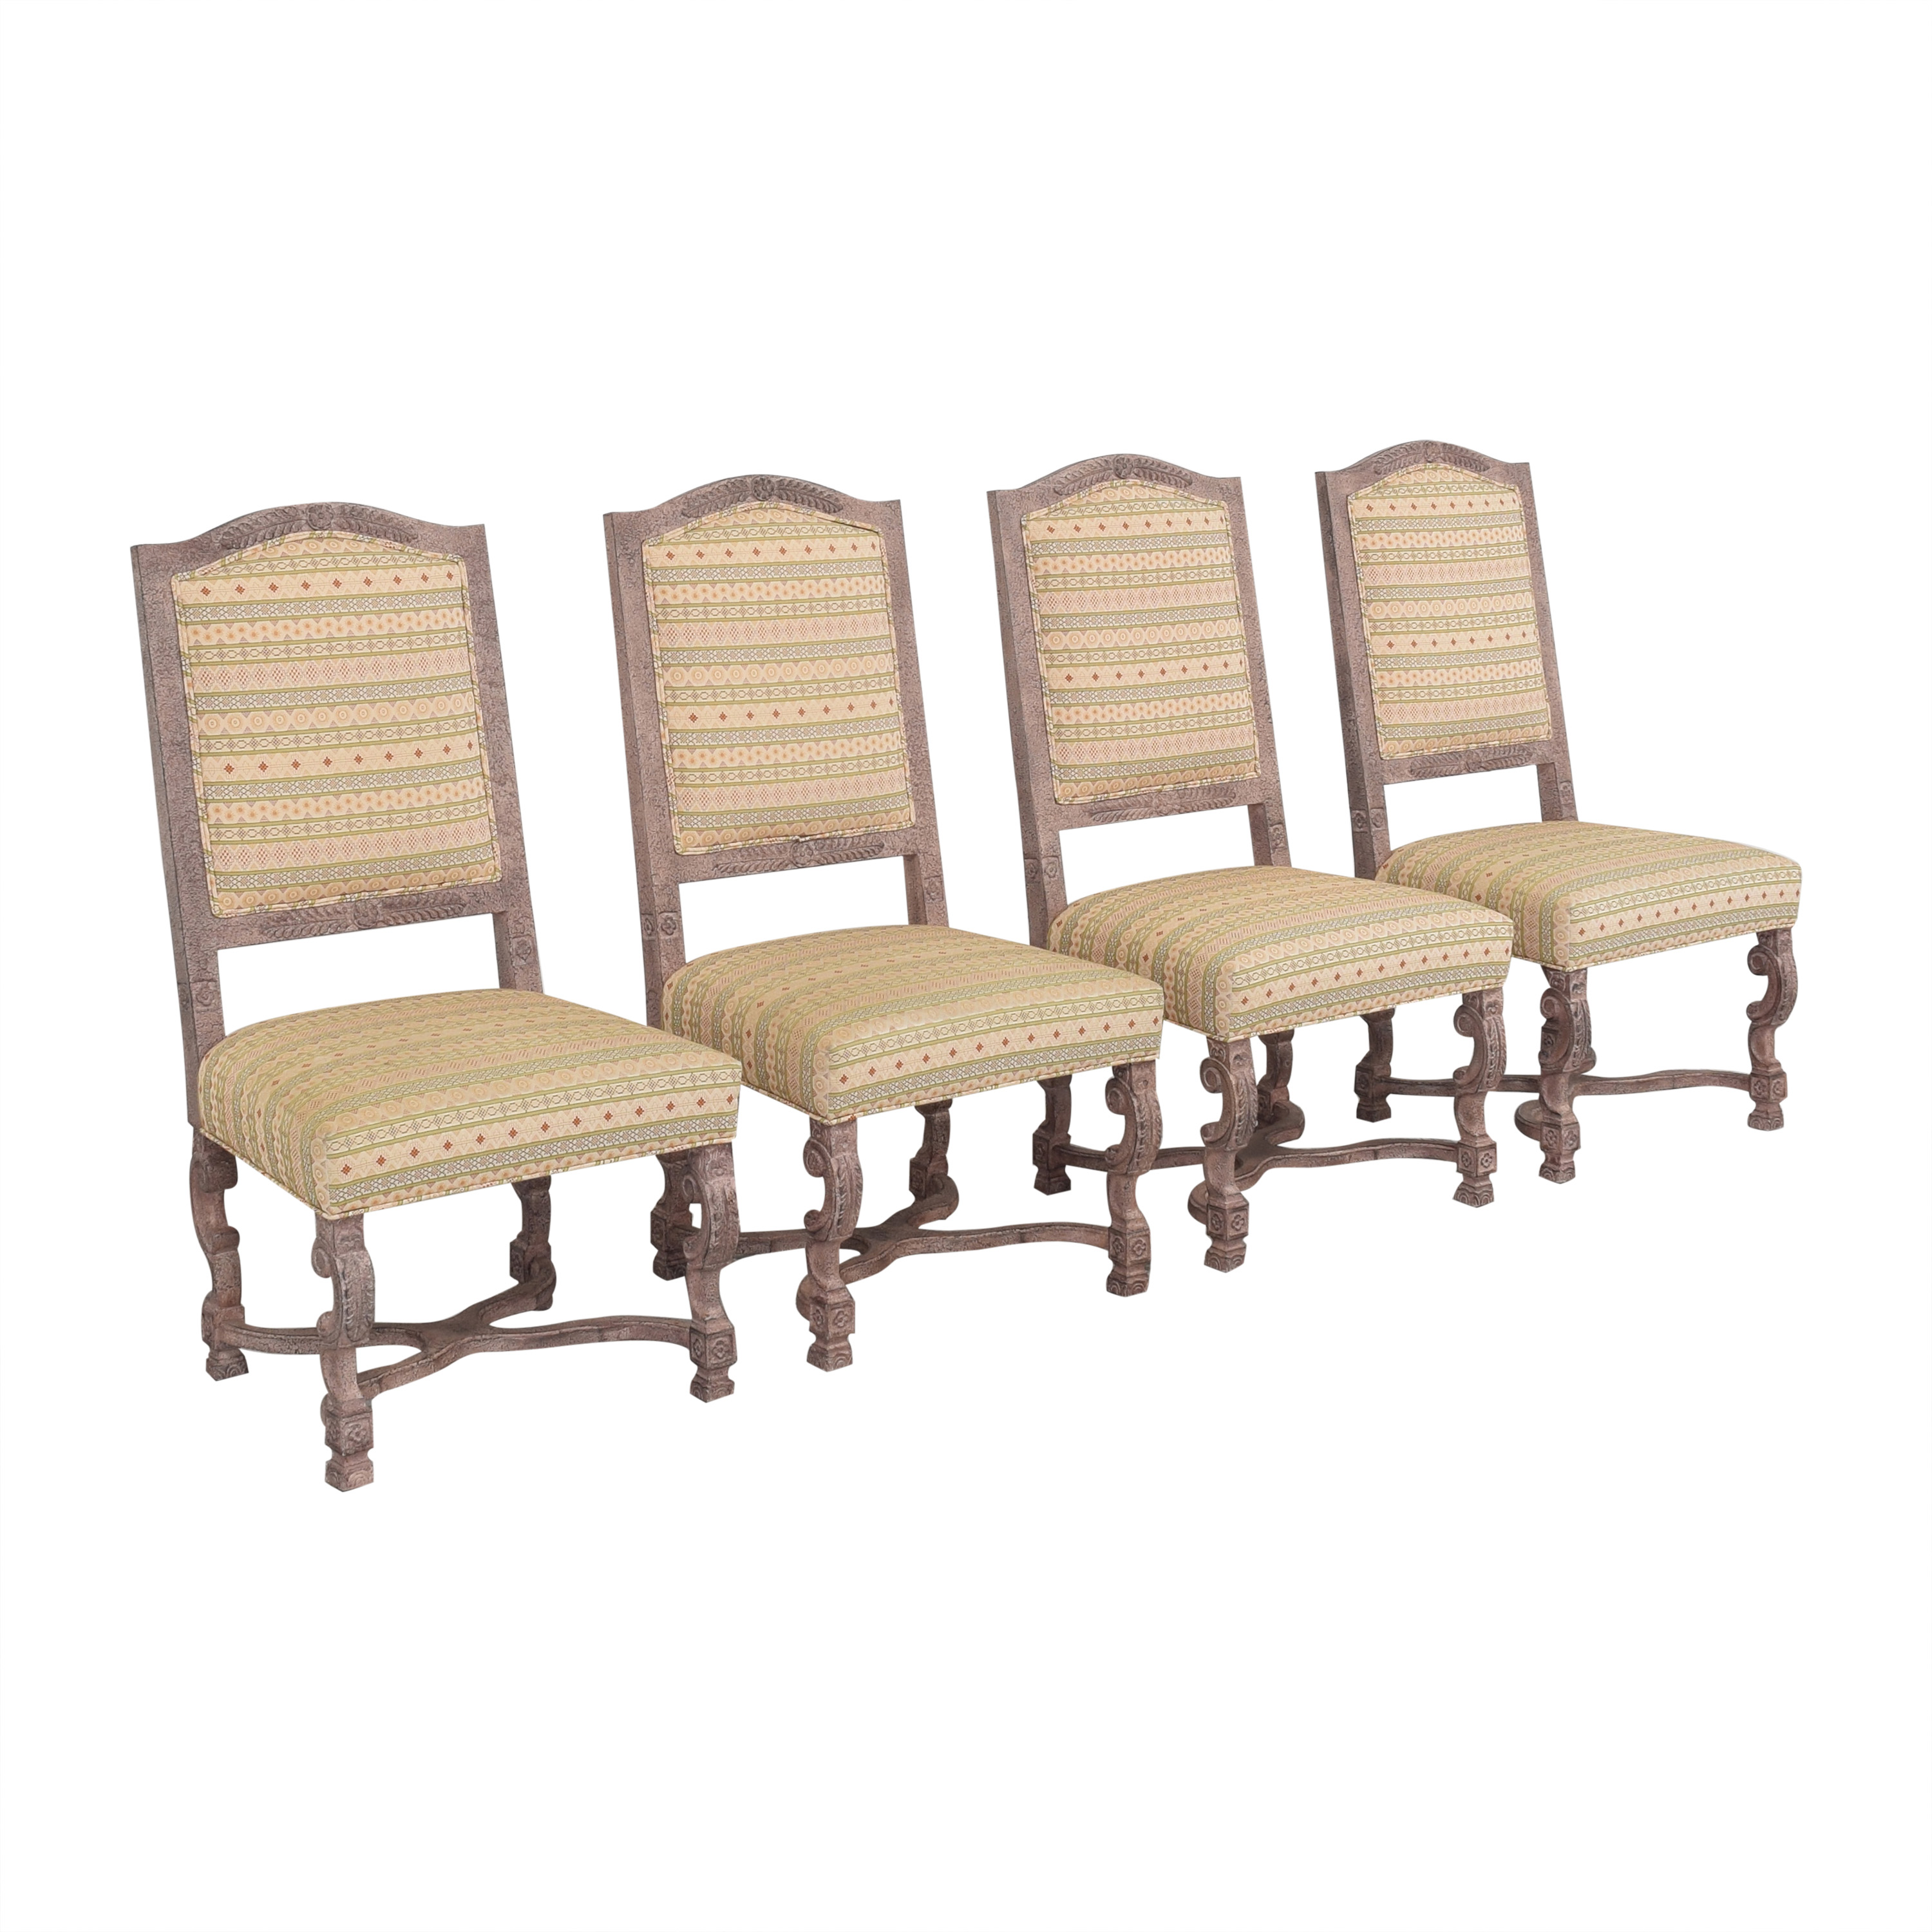 Artistic Frame Artistic Frame Monarque Dining Chairs discount